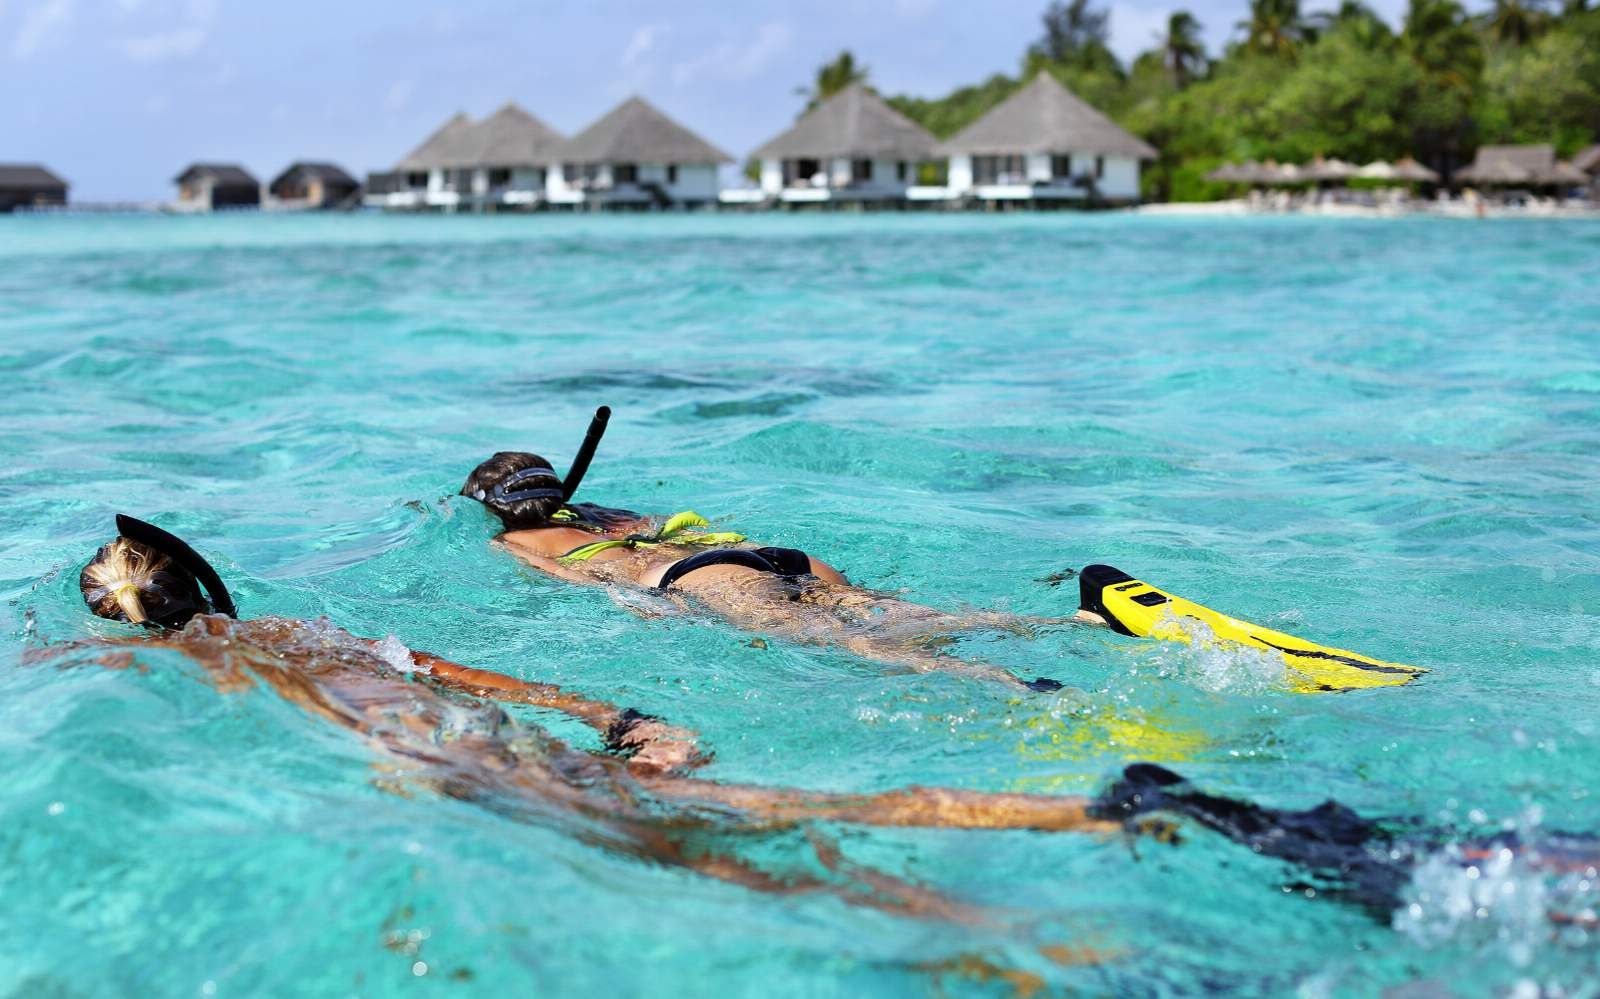 Snorkeling at Gangehi Resort